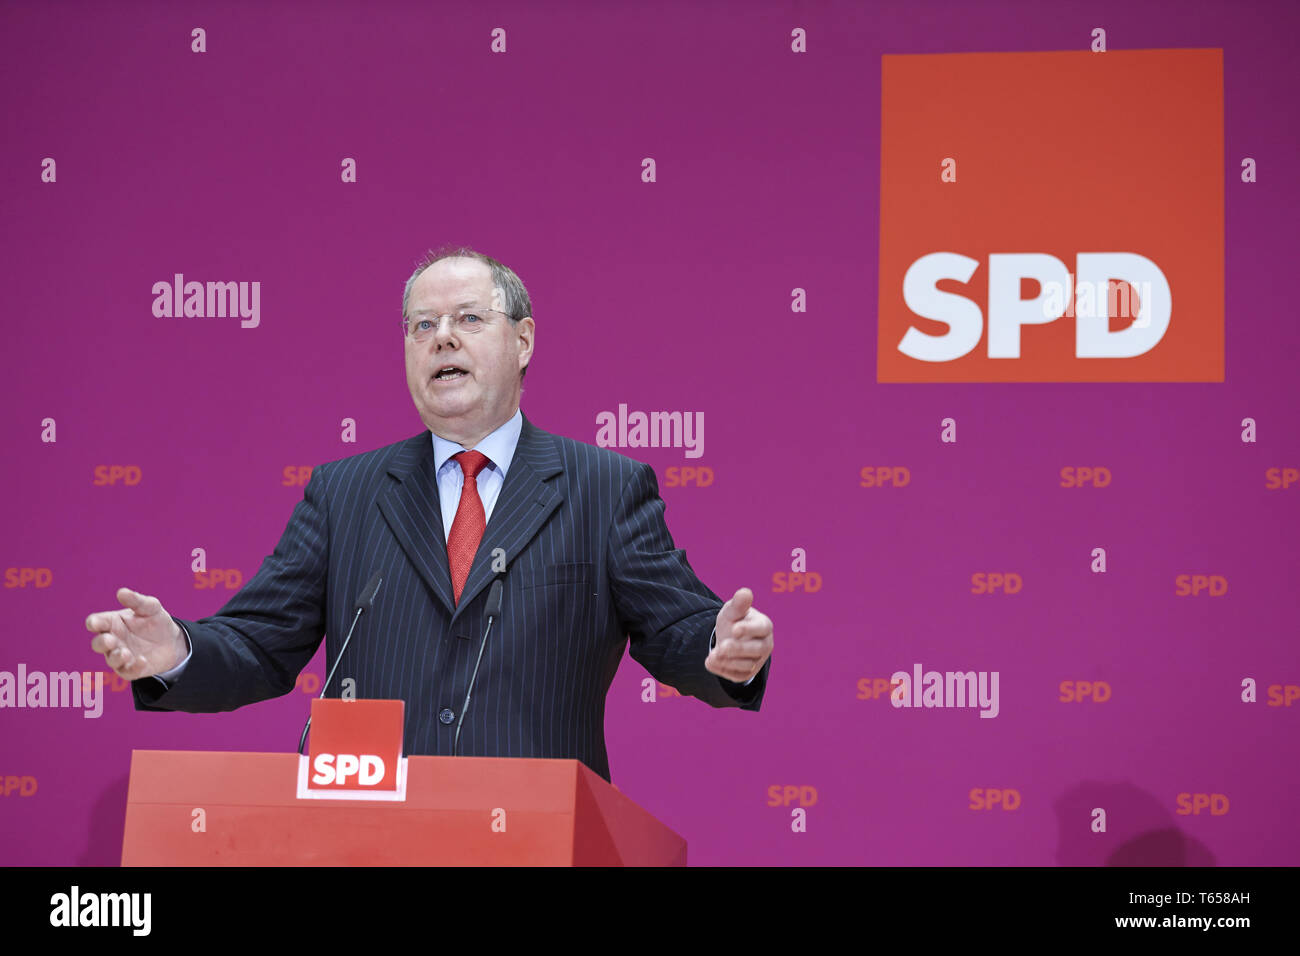 Steinbrück (SPD) and Gabriel at press conference. - Stock Image